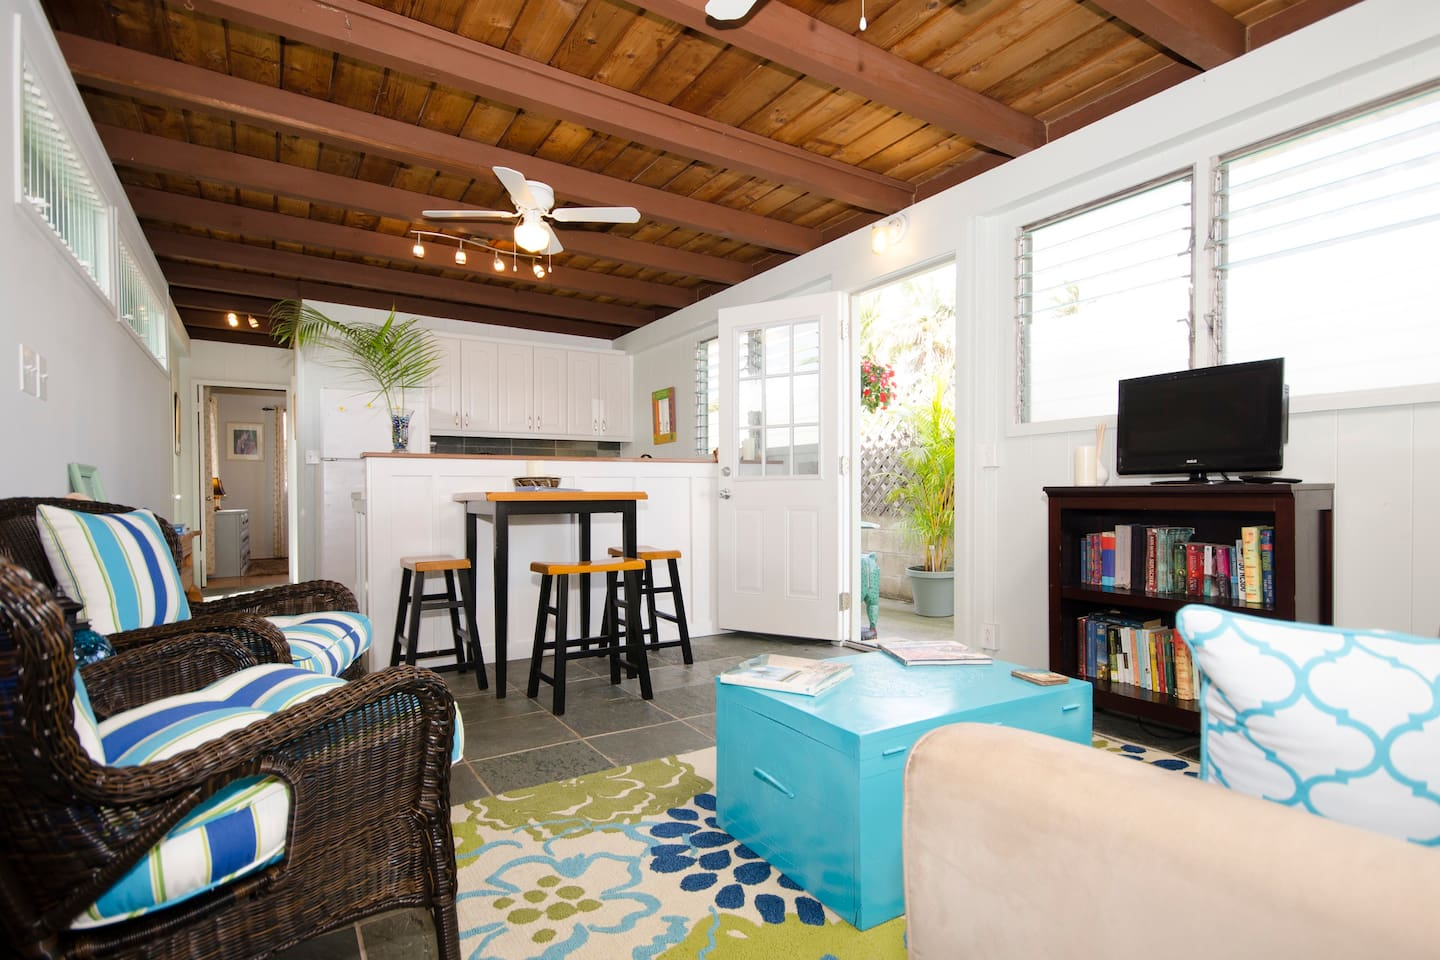 bright and airy cottage with a full kitchen and comfortable seating.